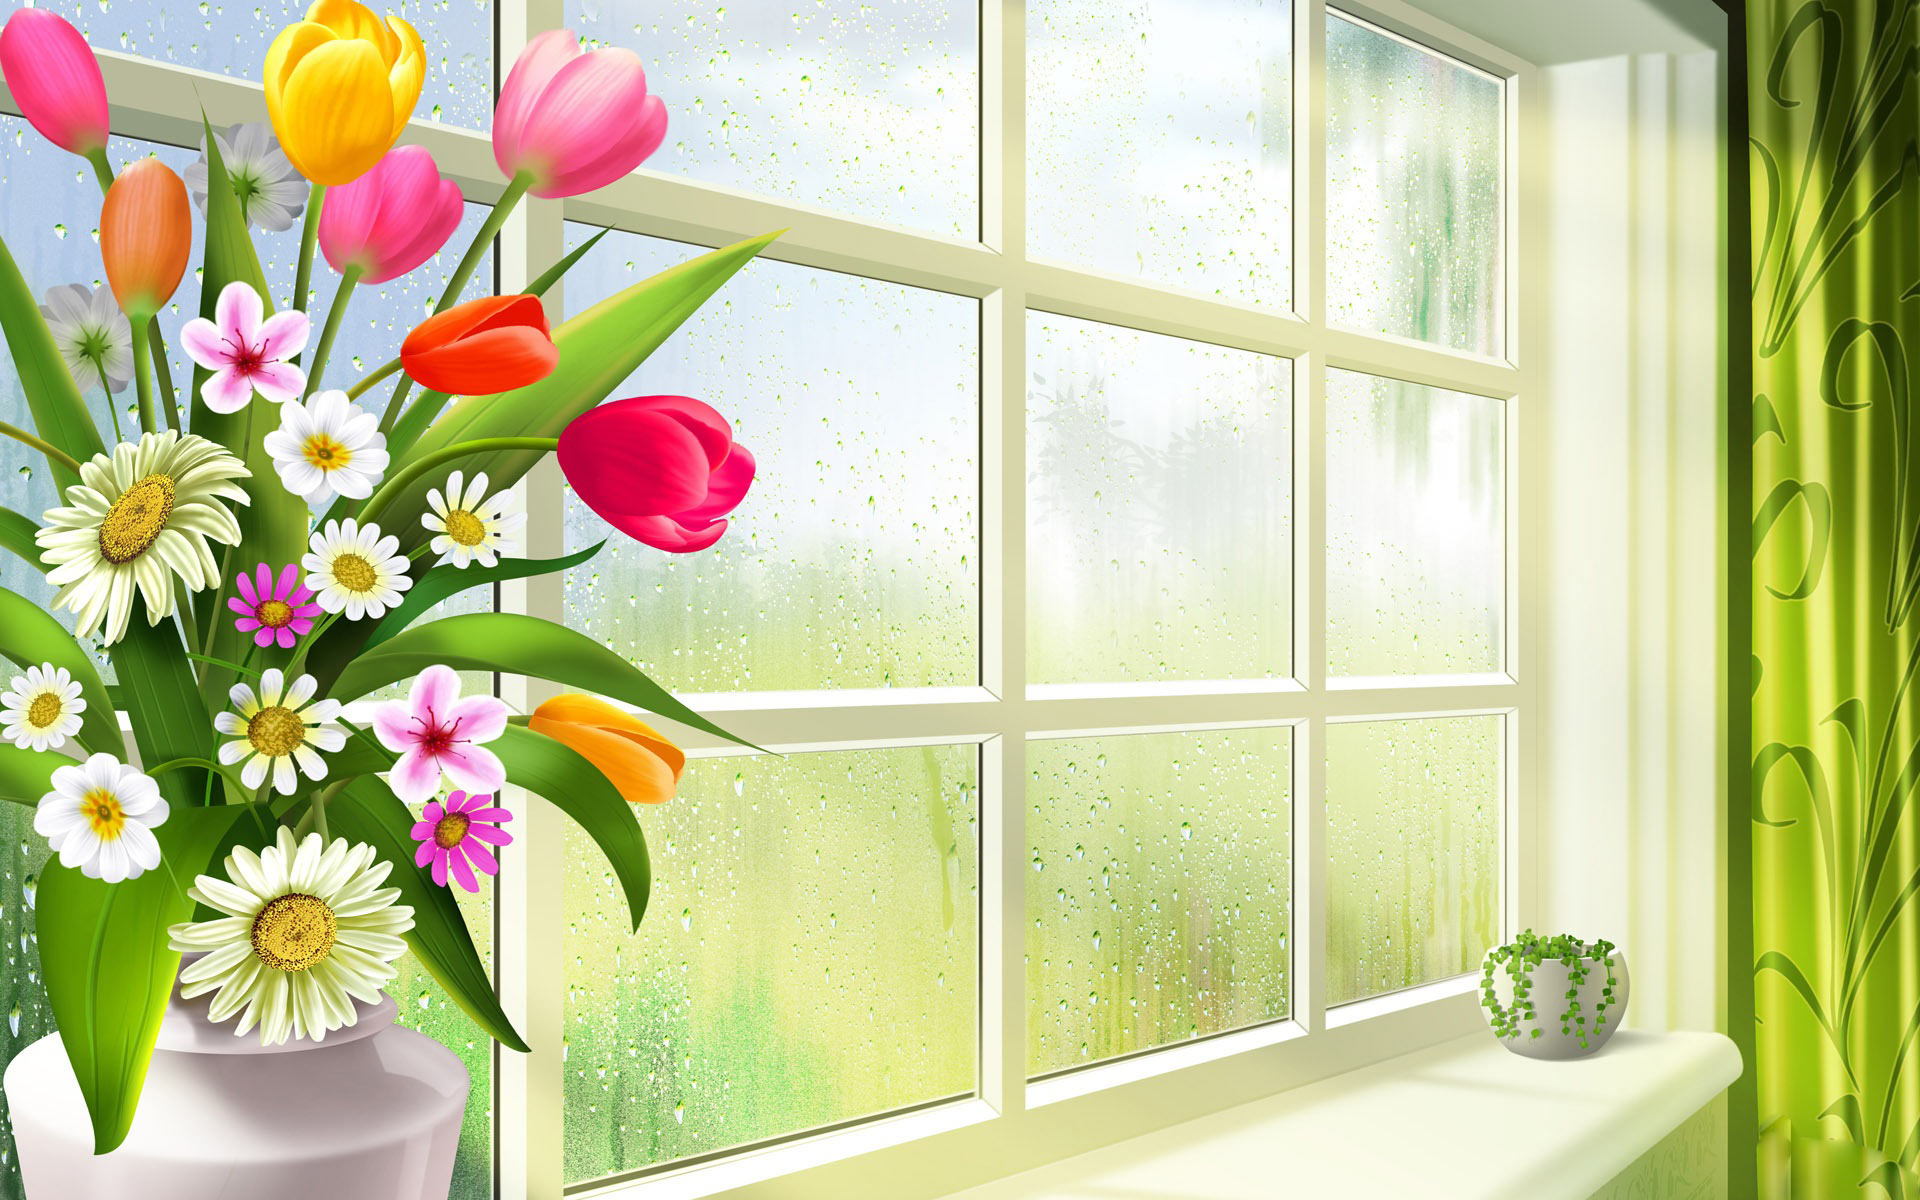 Spring Wallpaper02